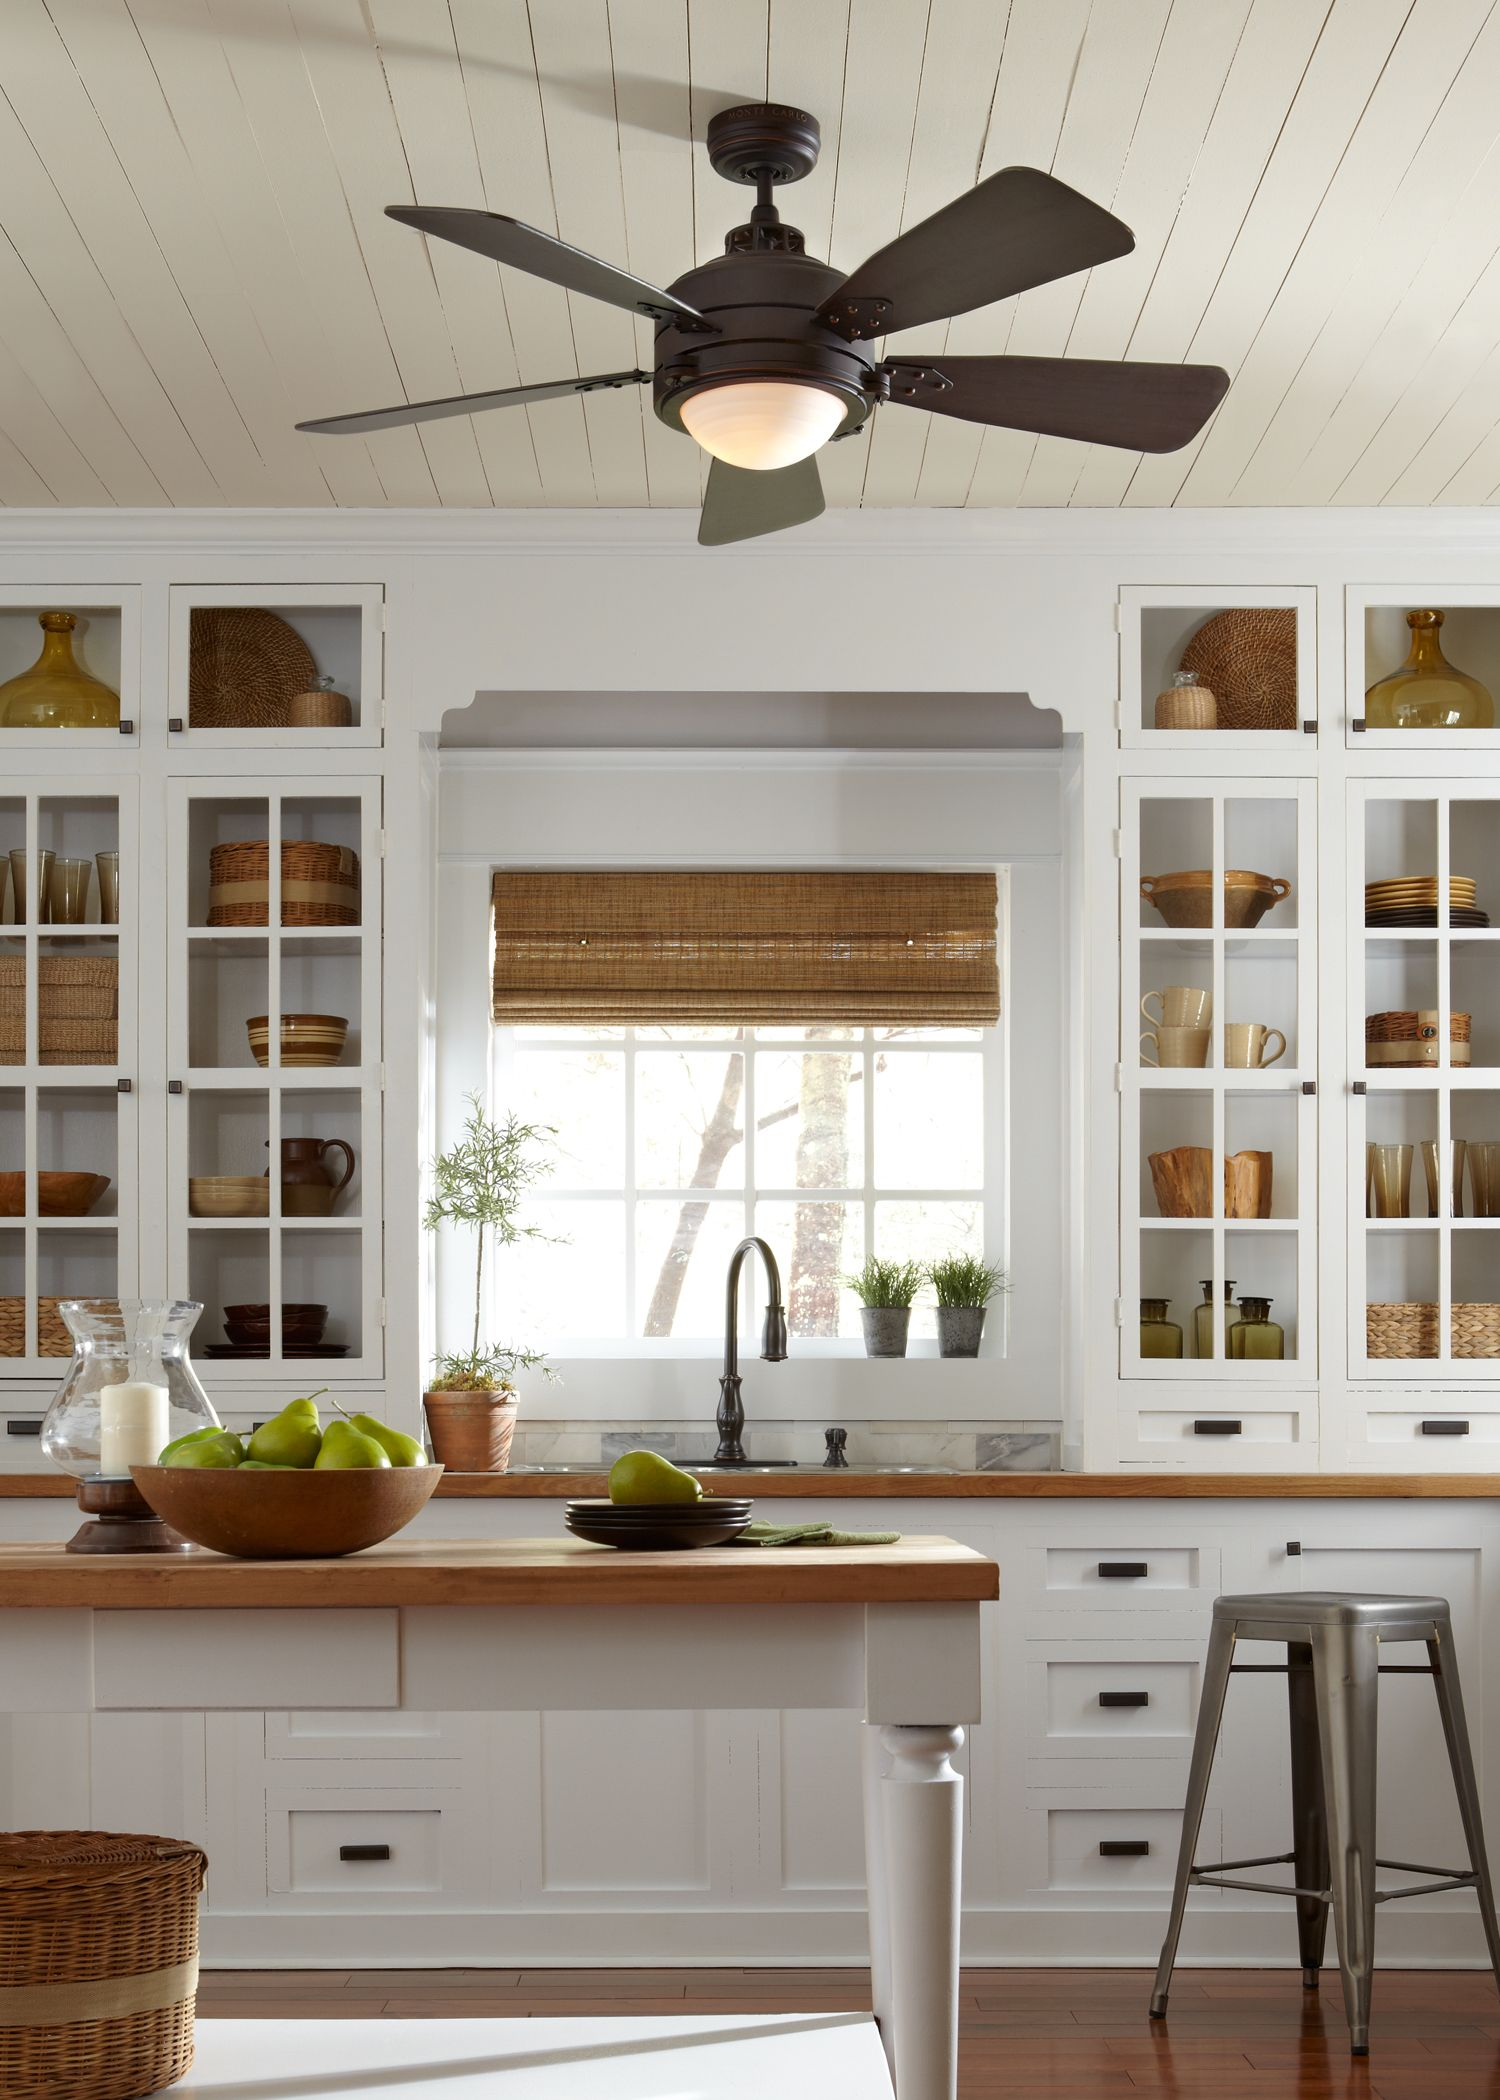 Kitchen Ceiling Fan Have A Vintage Industrial Décor The 52